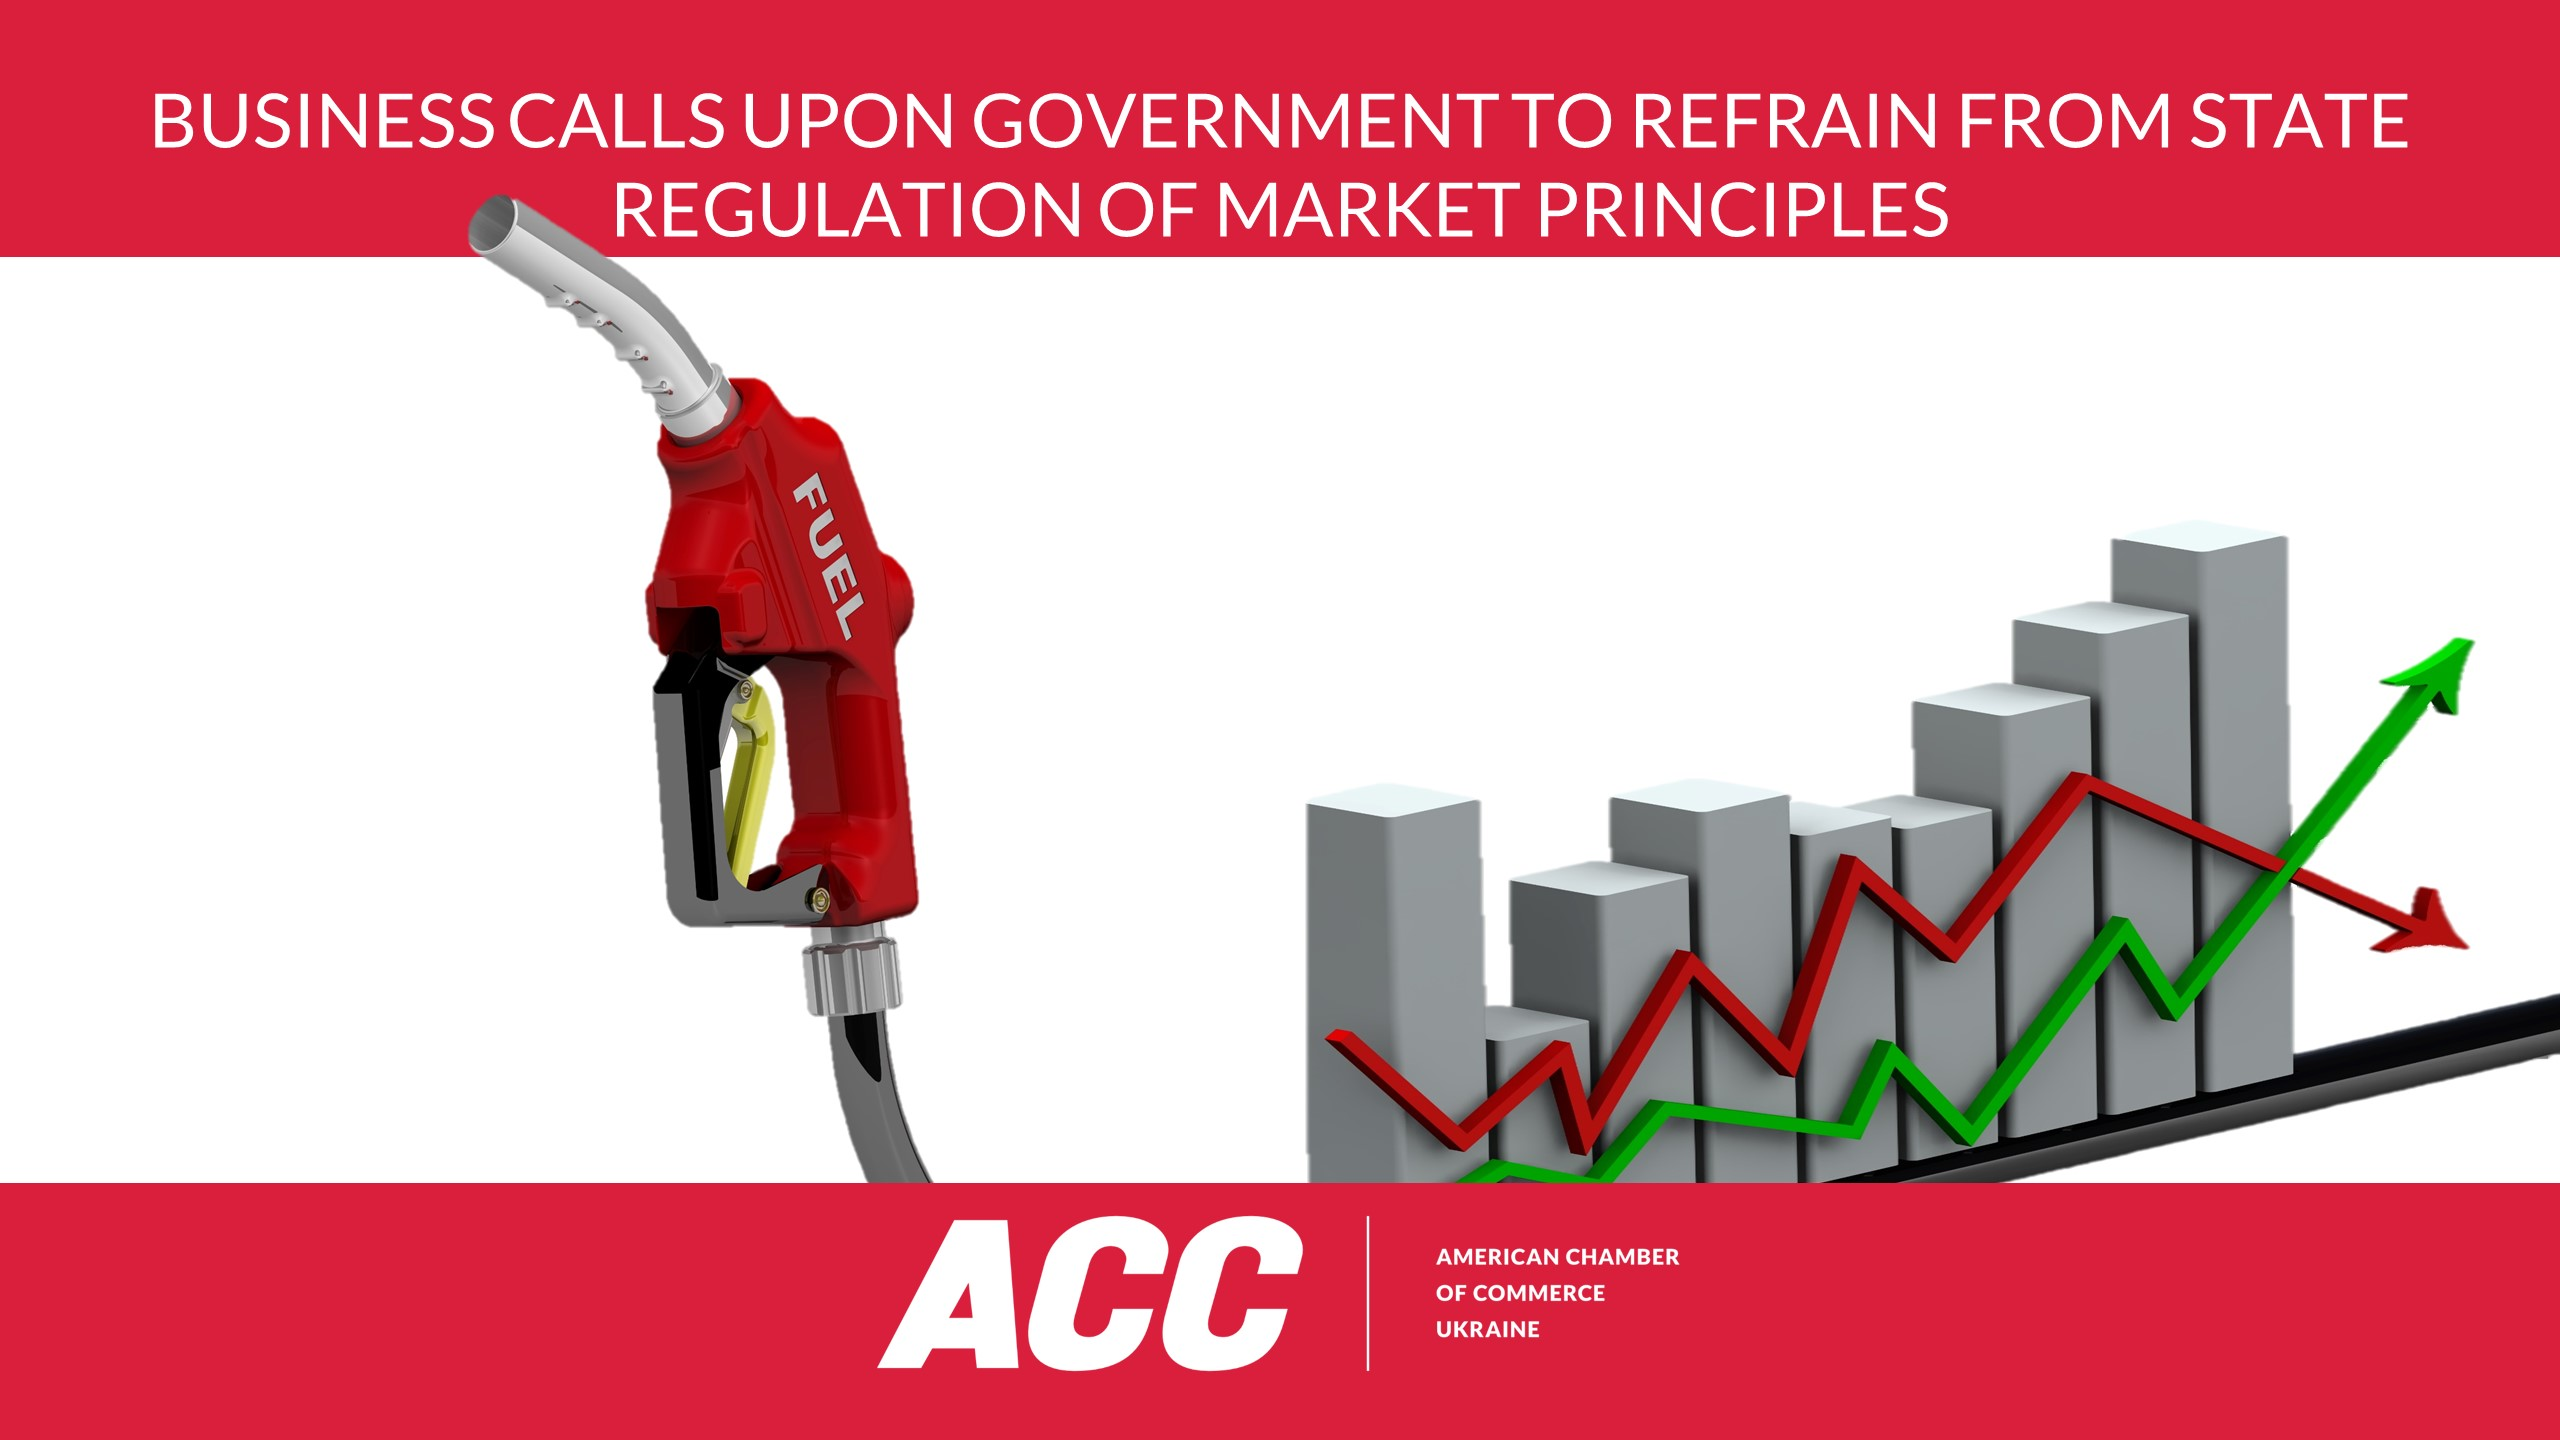 Business Calls upon Government to Refrain from State Regulation of Market Principles